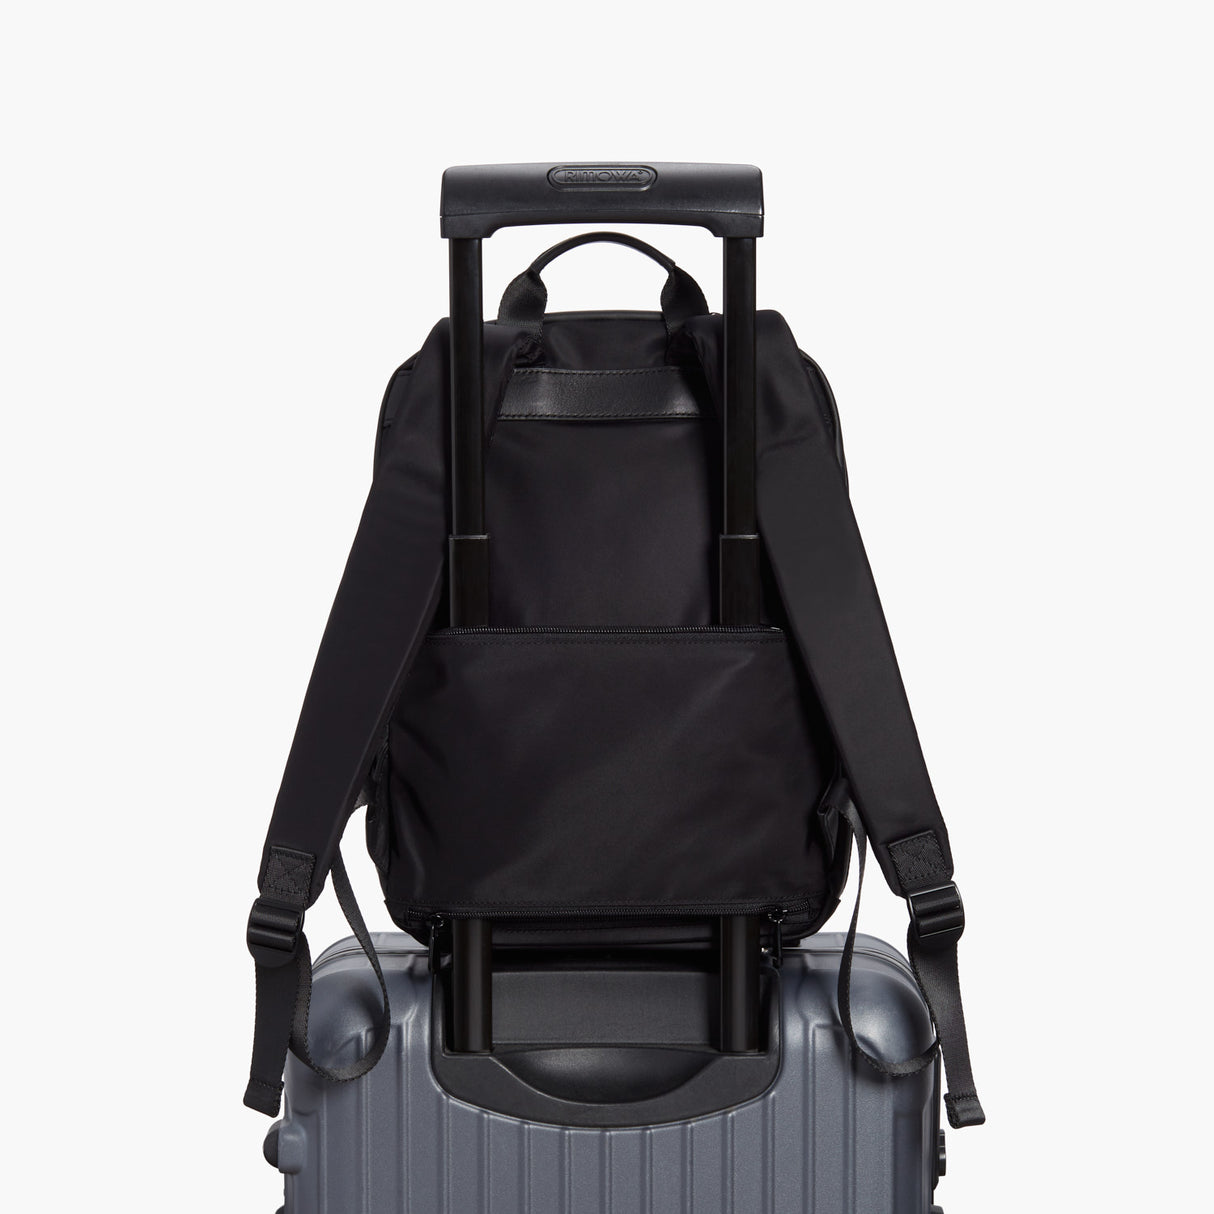 Luggage - Beacon - Nylon - Black / Gold / Camel - Backpack - Lo & Sons